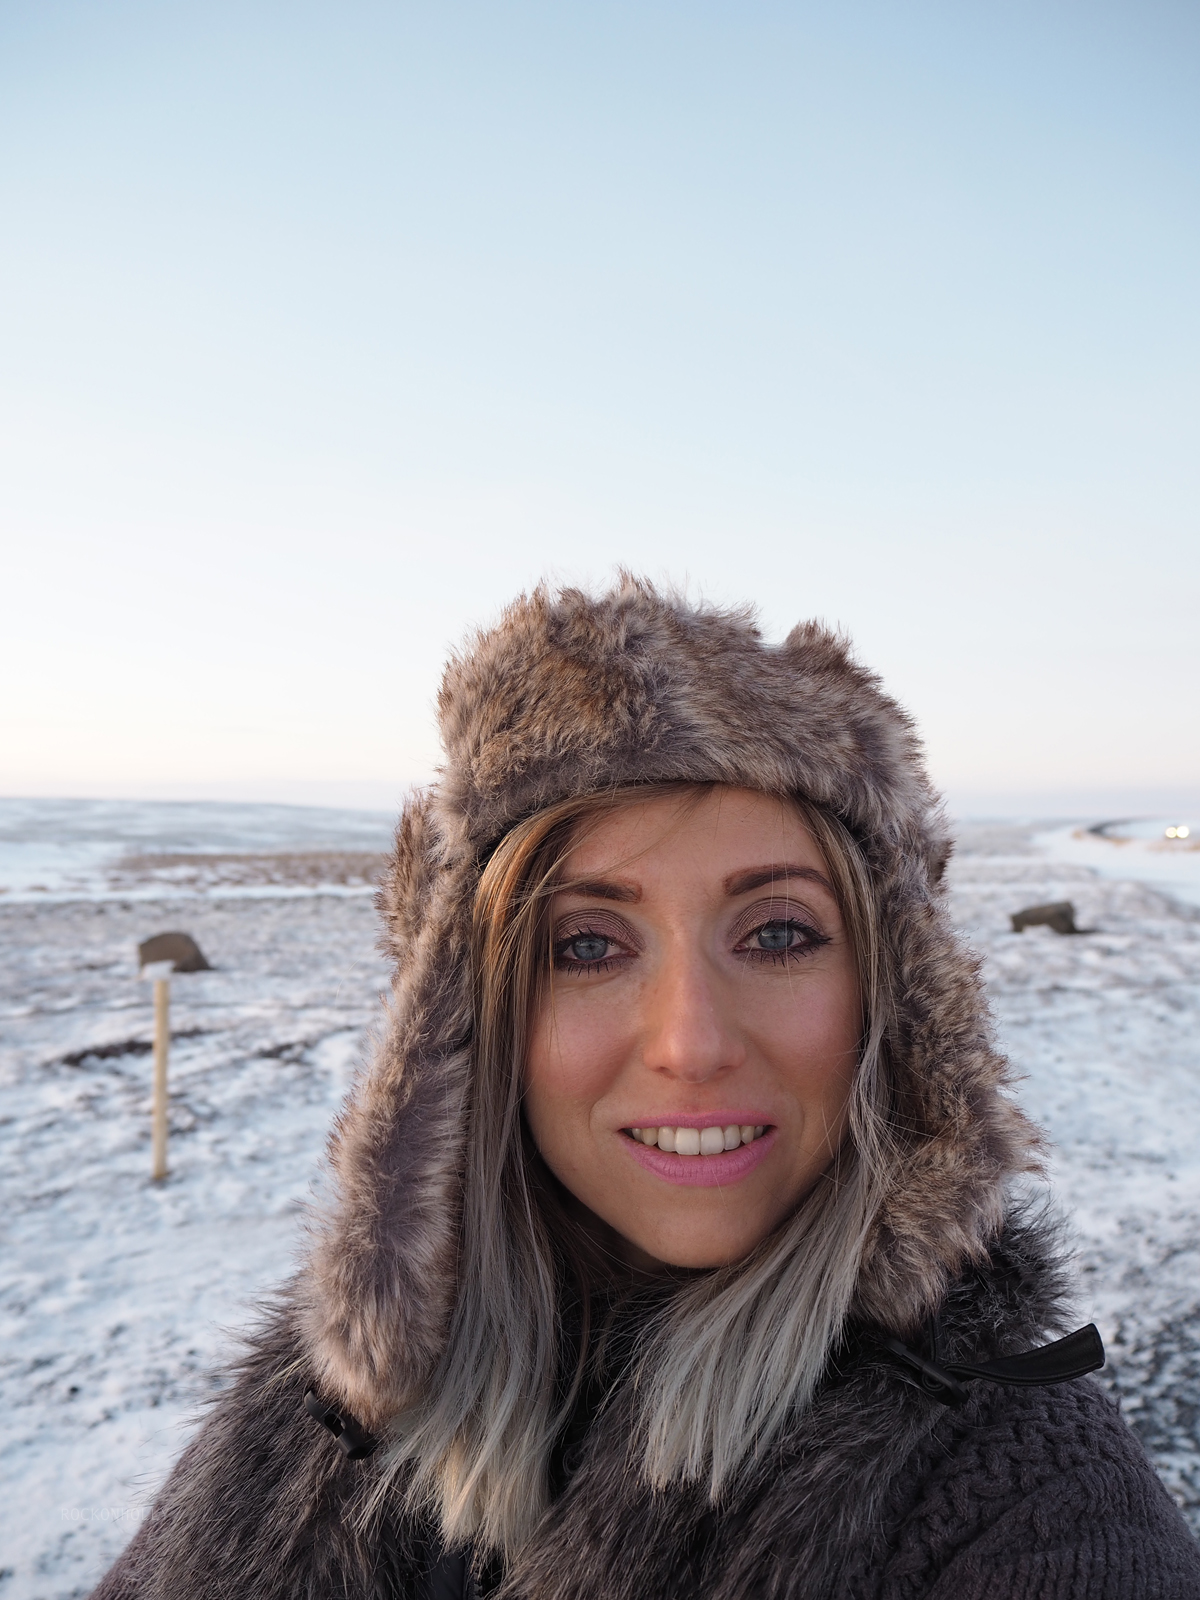 Rock On Holly in Iceland